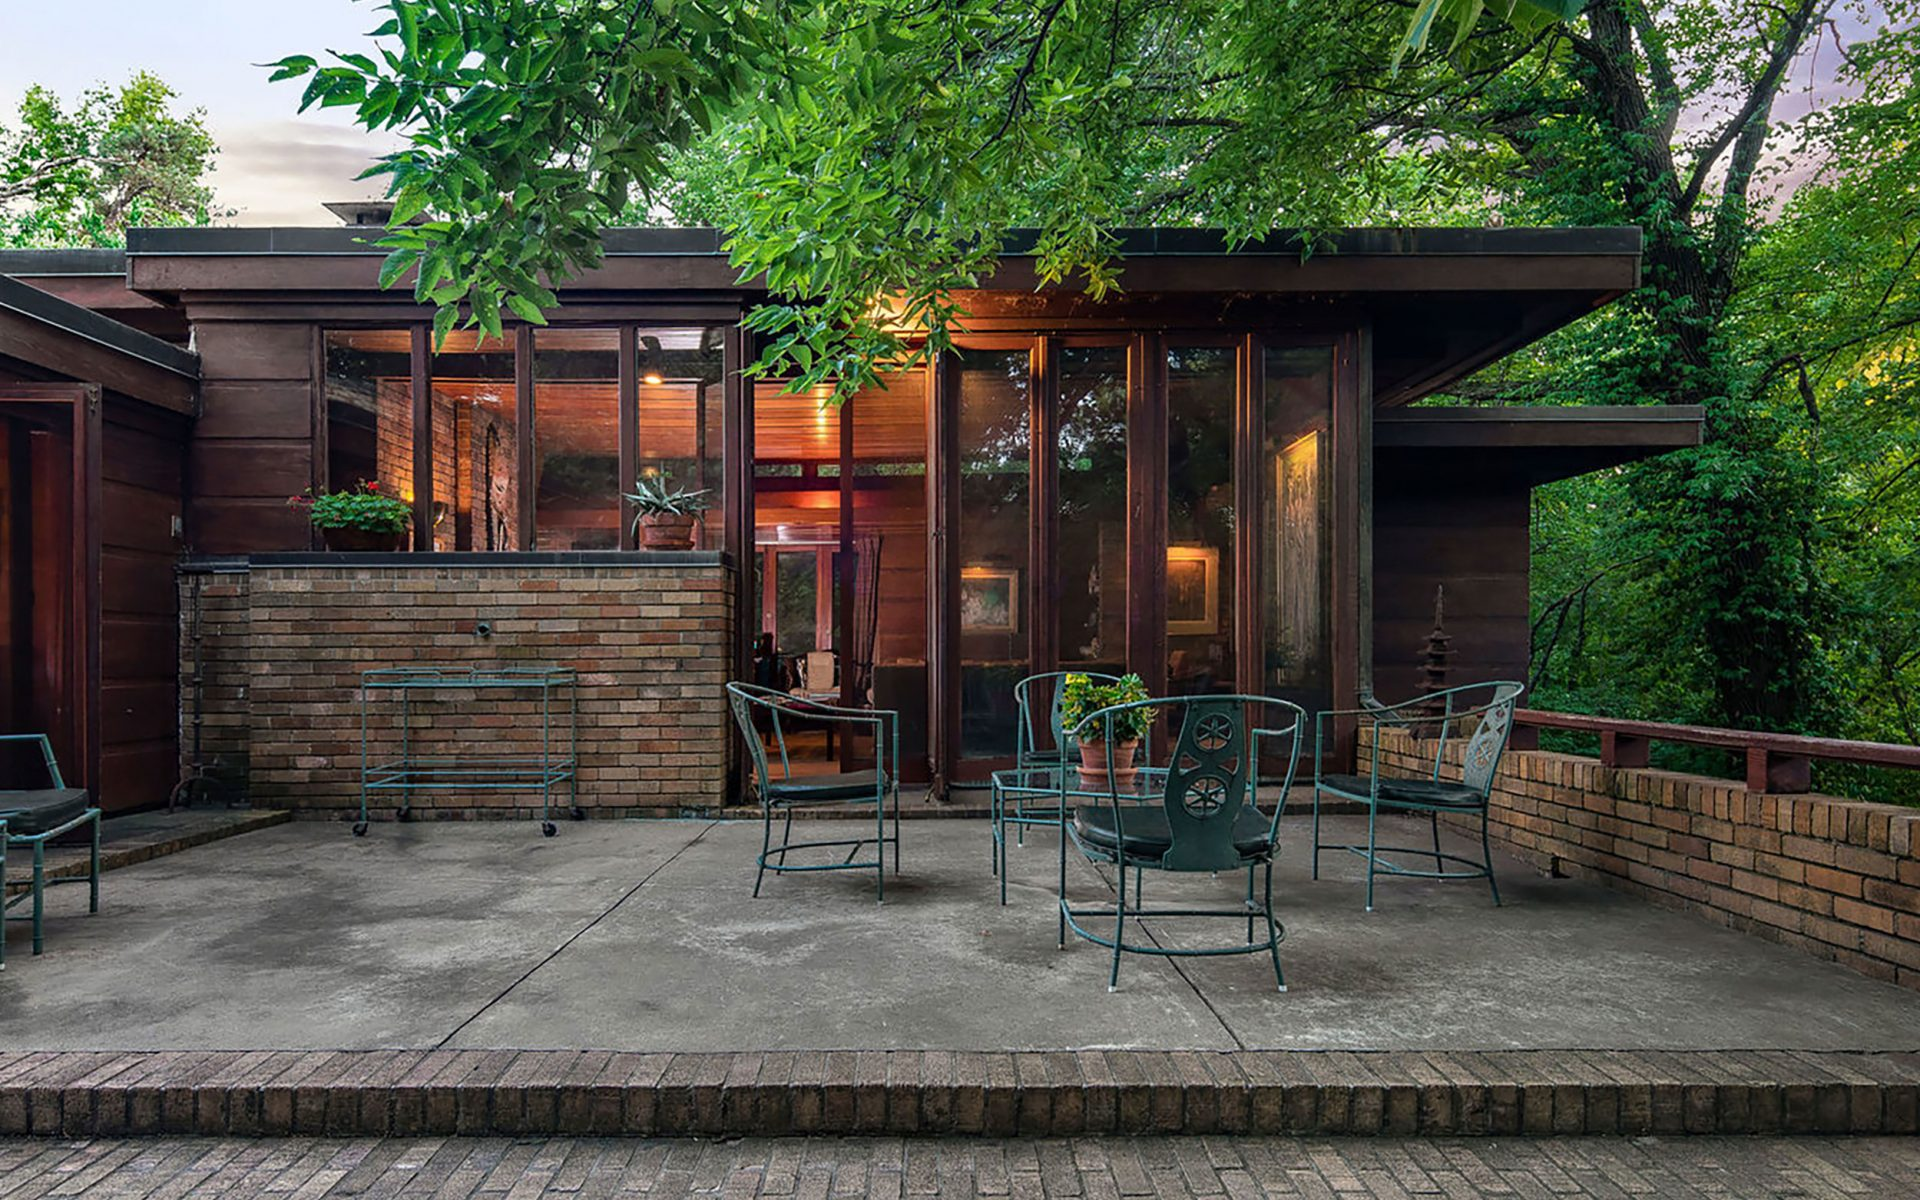 Frank lloyd wright designed house in kansas city hits the market galerie - Frank lloyd wright designs ...